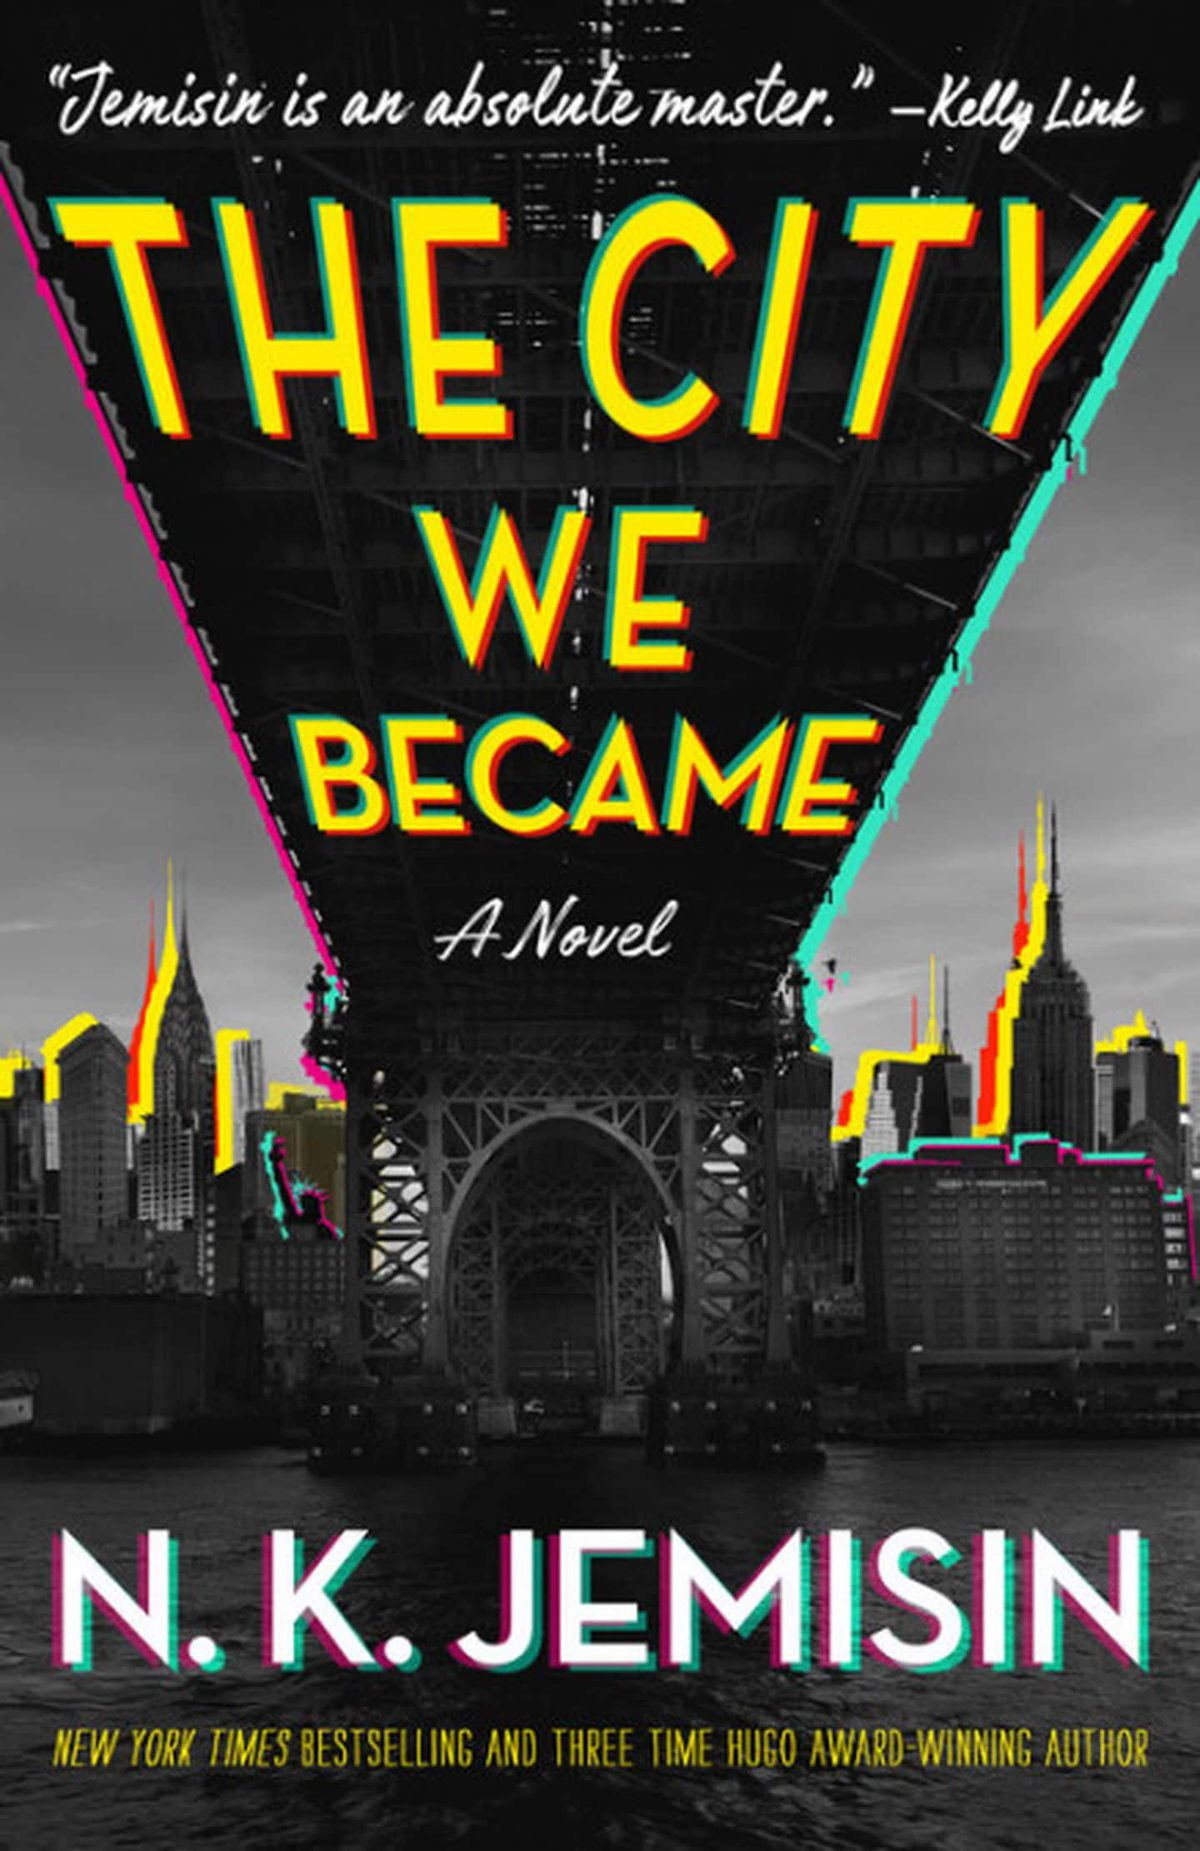 a glowing city on the cover of The City We Became by N.K. Jemisin